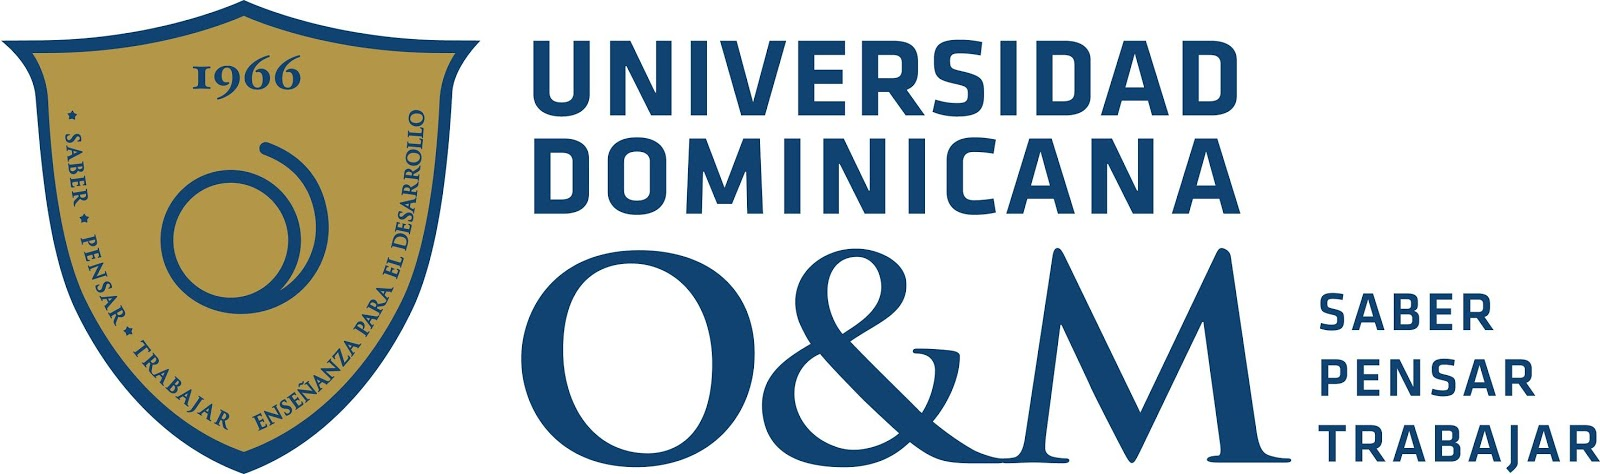 UNIVERSIDAD DOMINICANA O&M